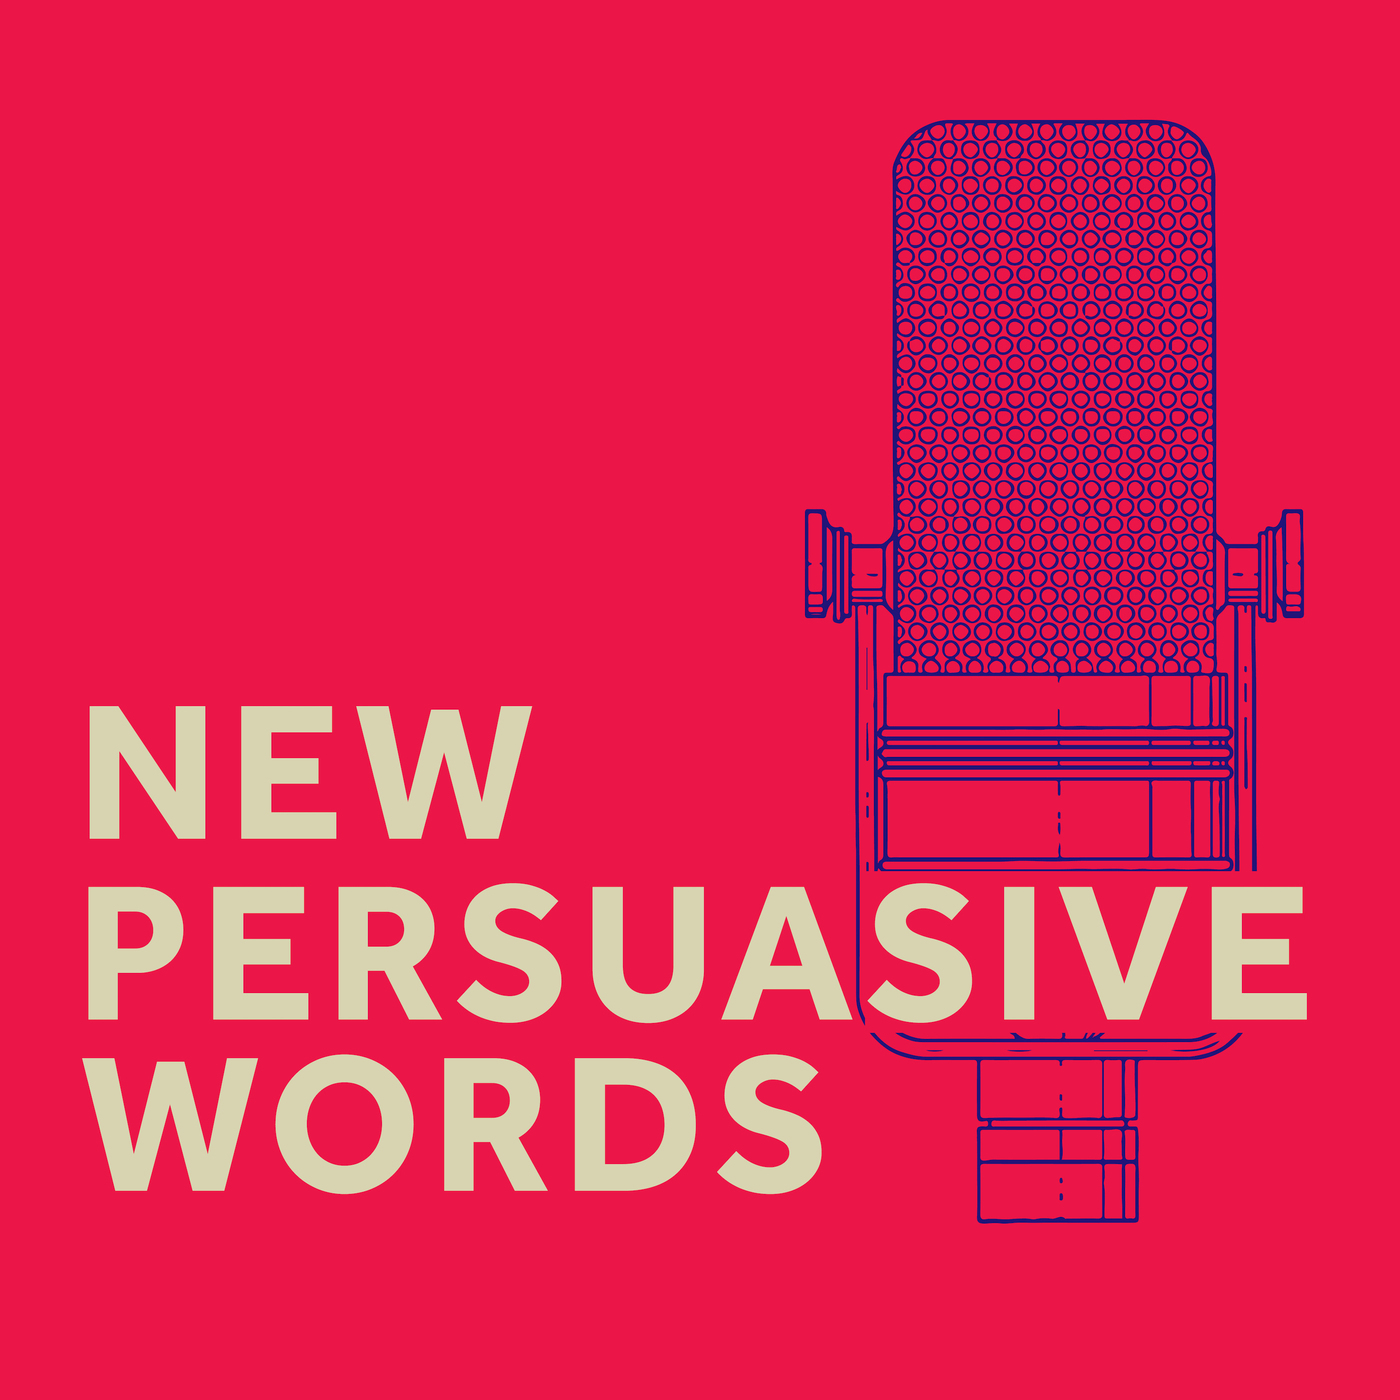 New Persuasive Words 142: Love The World?